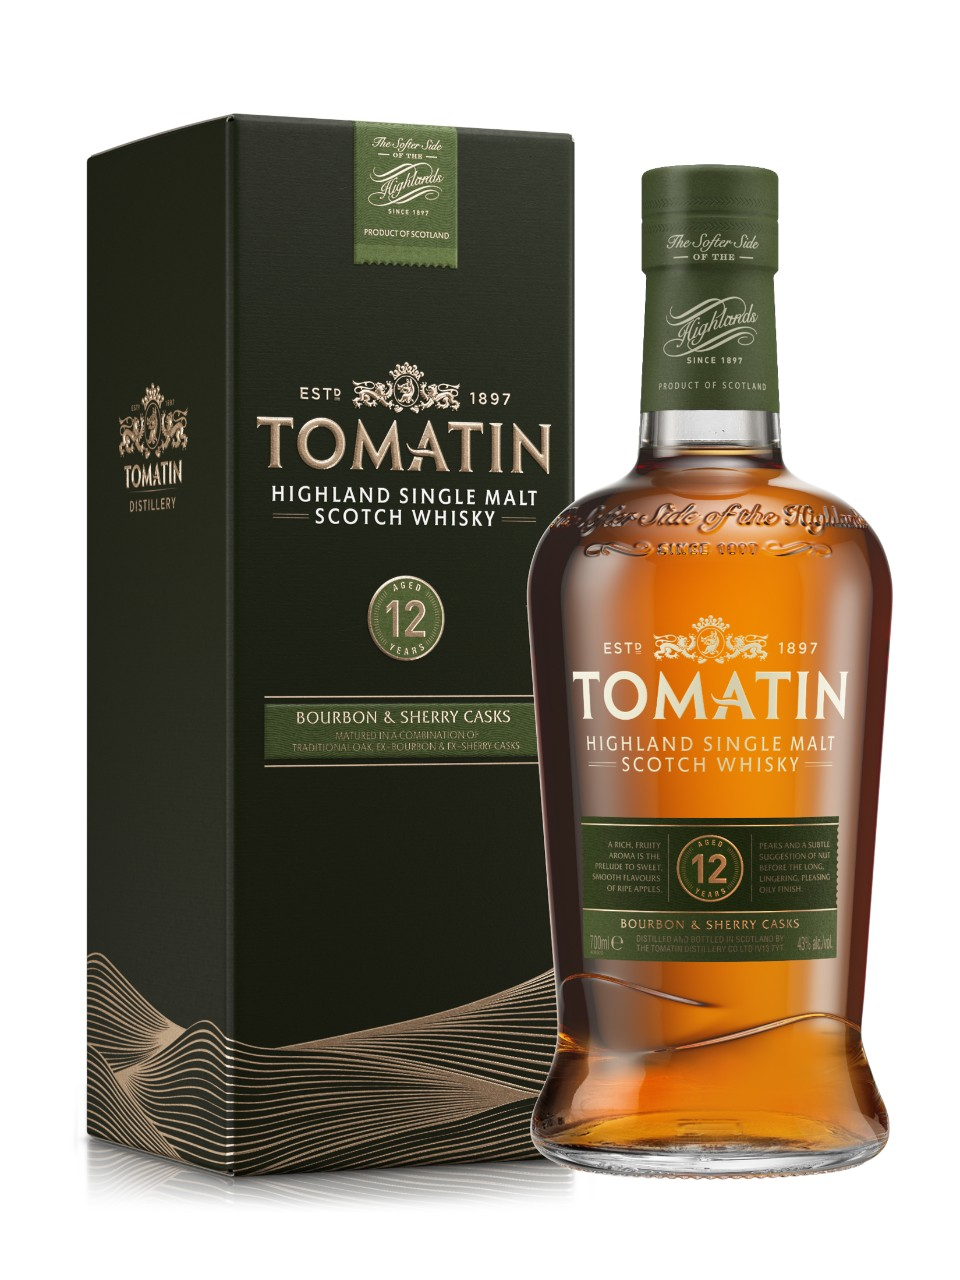 Image for Tomatin 12 Year Old Highland Single Malt Scotch Whisky from LCBO